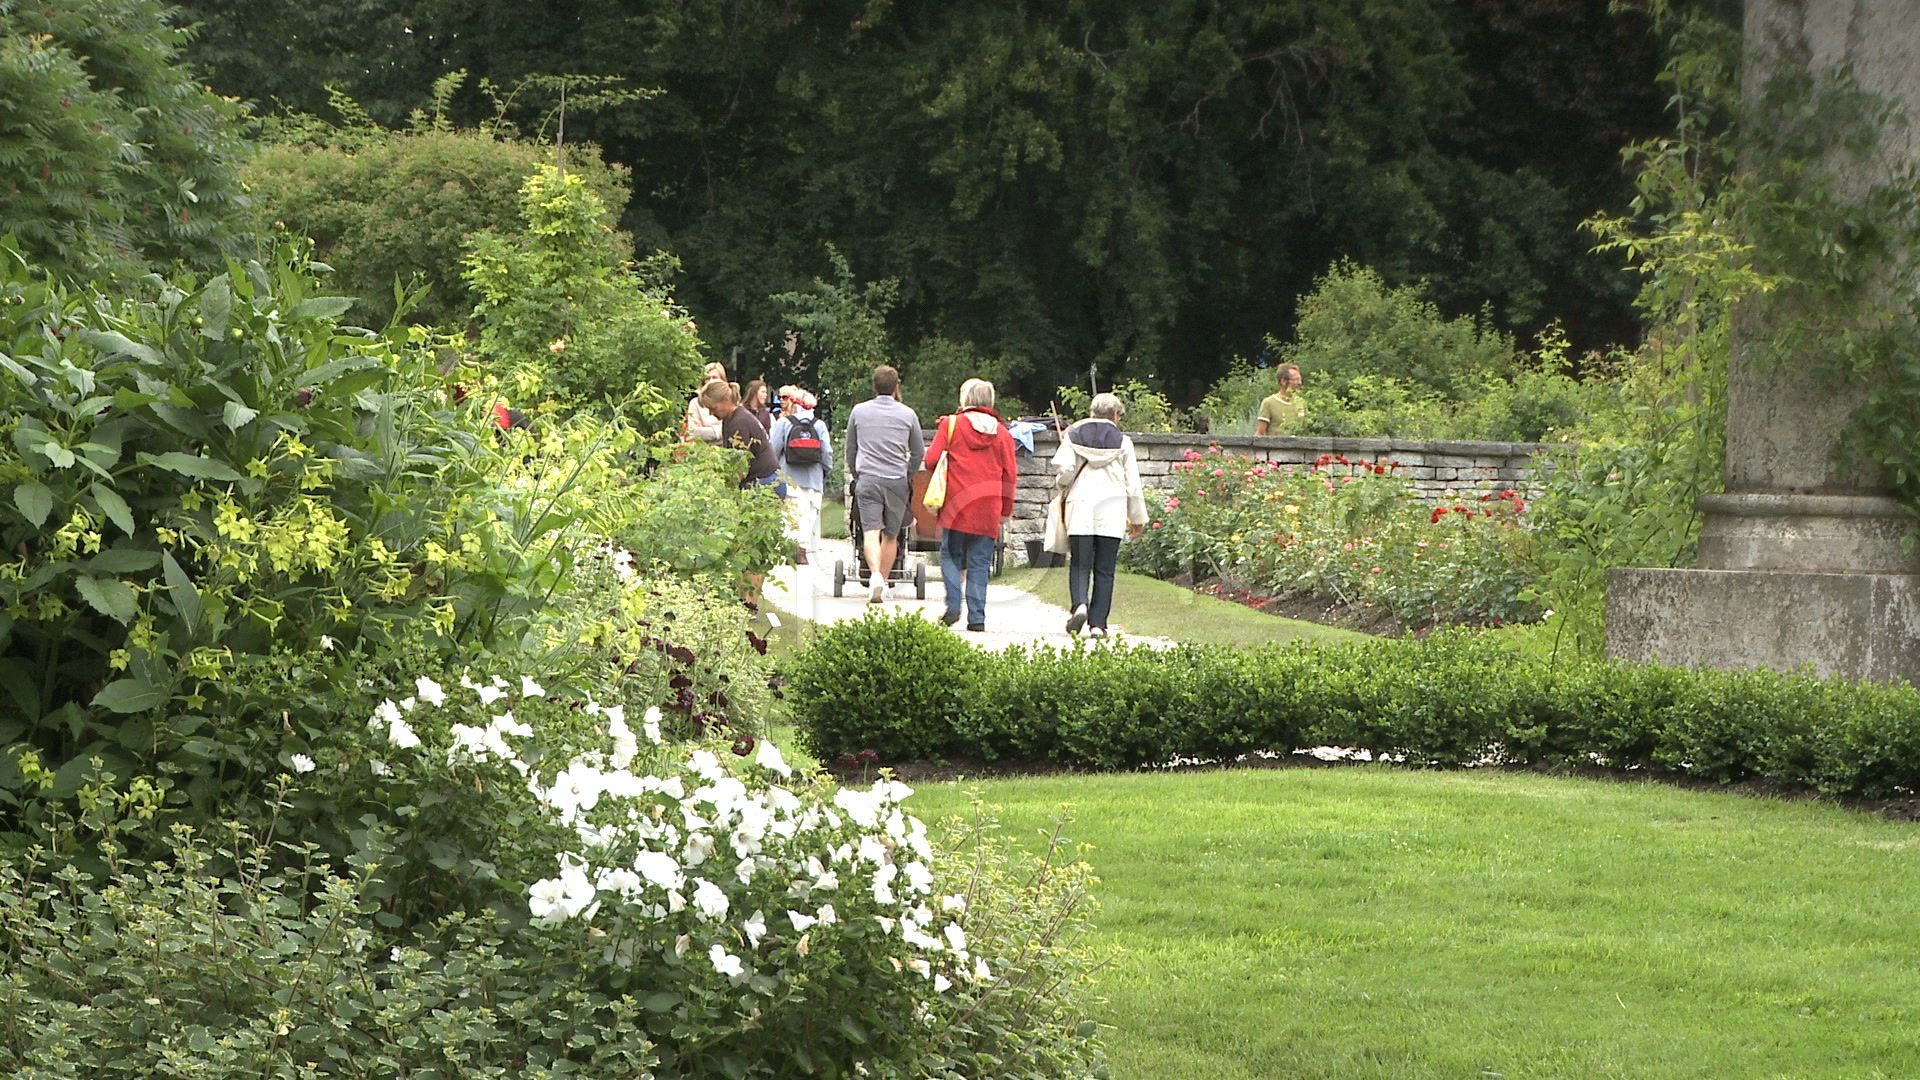 People walking in an botanical garden in the city of Visby